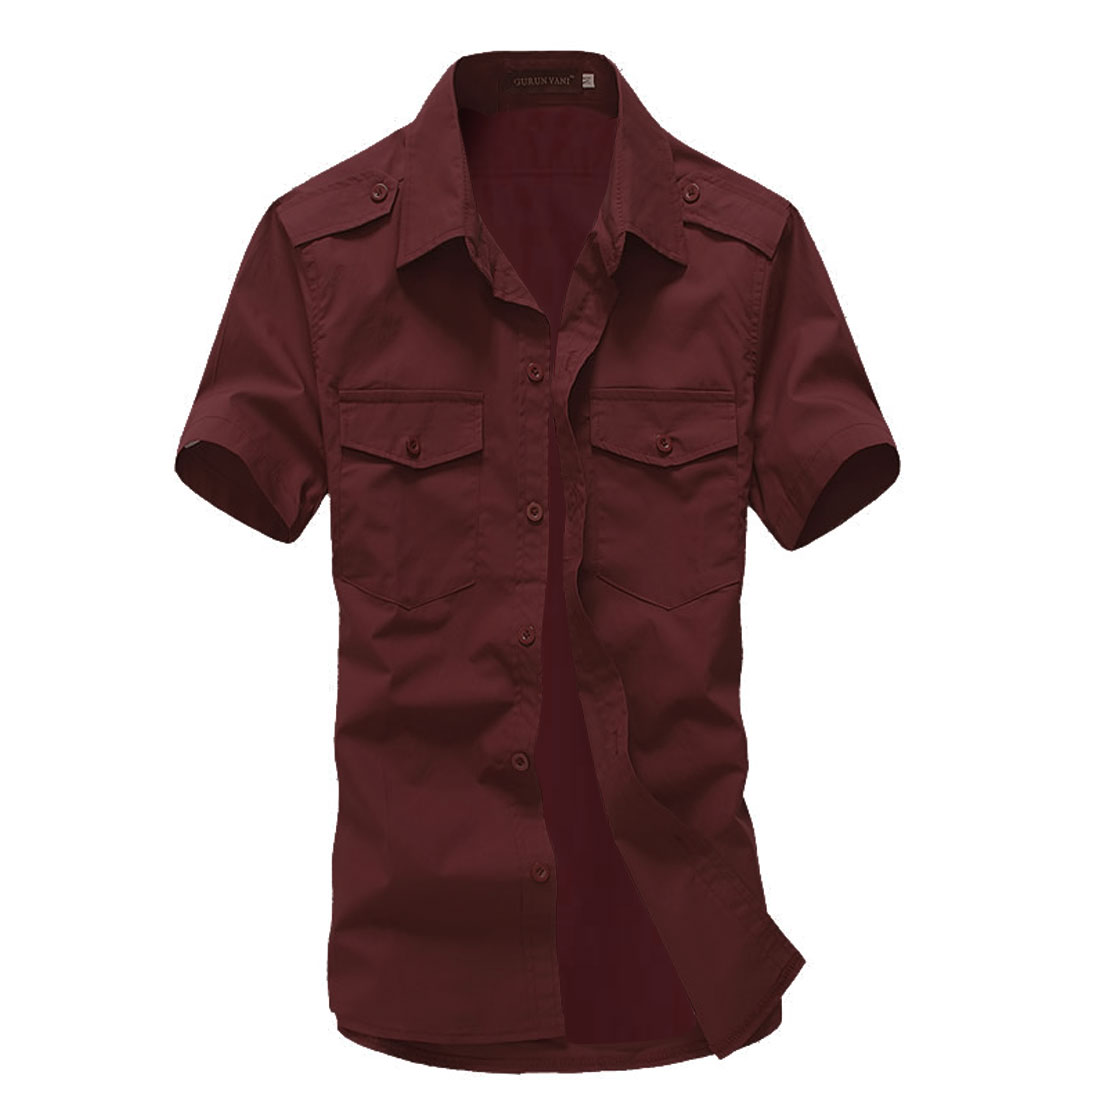 Men Short-sleeved Buttons Front Flap Pockets Shirt Burgundy L